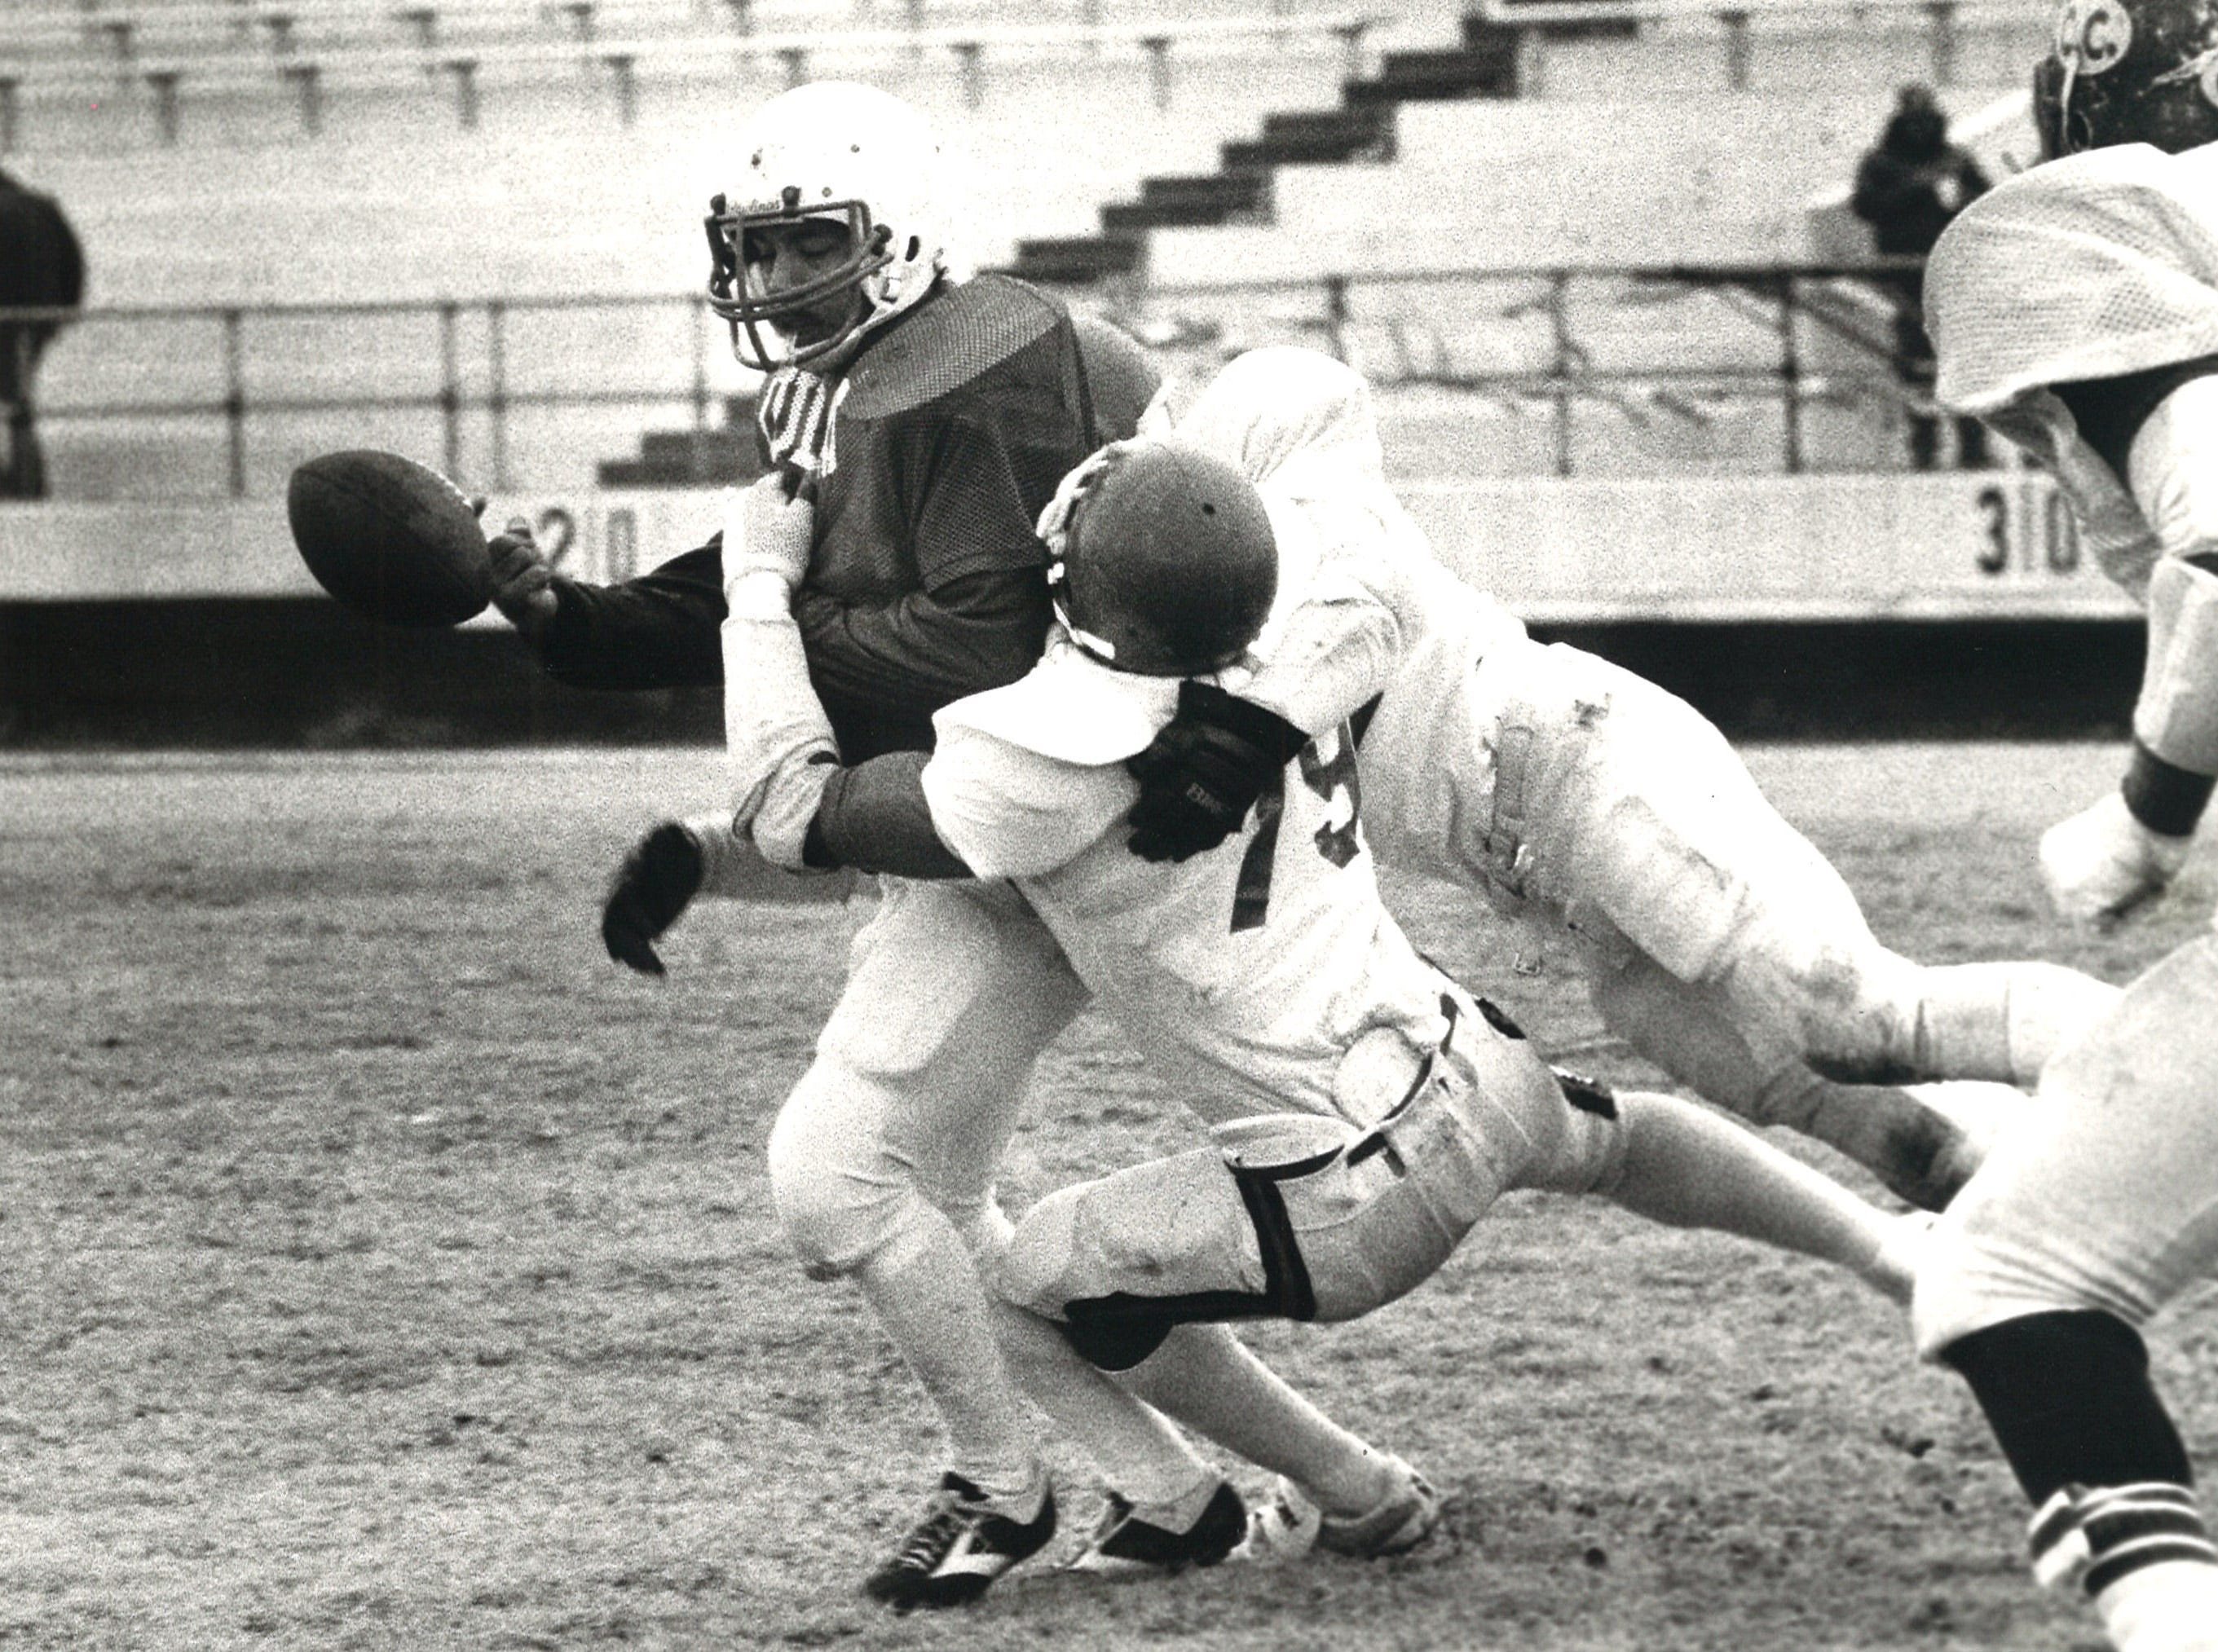 No. 11 Lupe Gutierrez, quarterback for the LULAC Broncos, fumbles the ball during the first quarter of the annual Menudo Bowl at Buc Stadium on Jan. 14, 1984. Causing the fumble is No. 79, Herrow Collins  and No. 32 Dan Garcia of the Corpus Christi Army Depot Cobras.